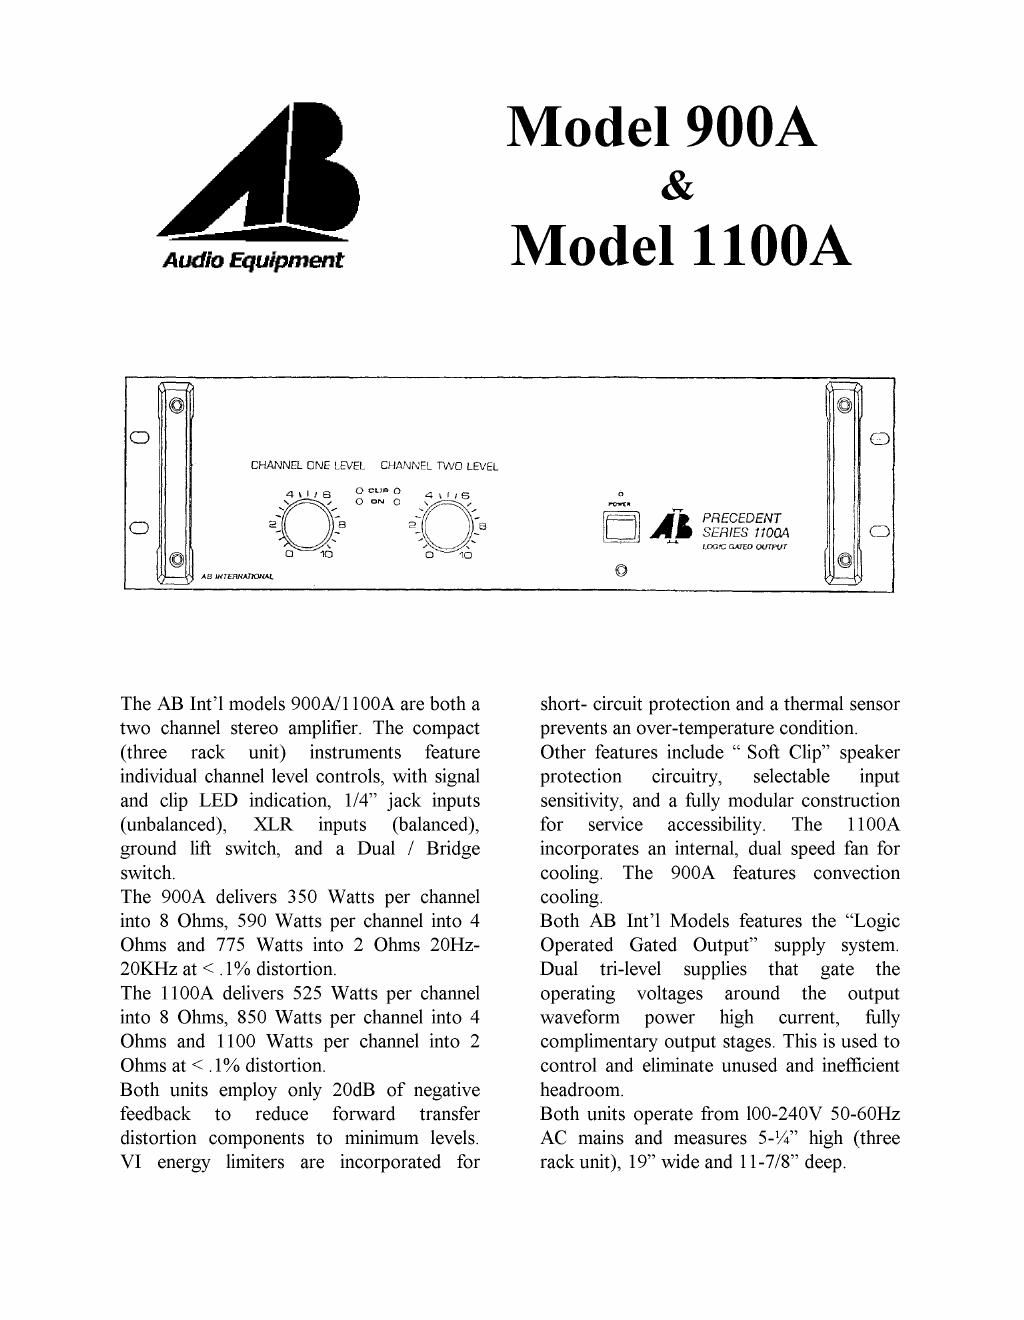 ab international 900 a brochure